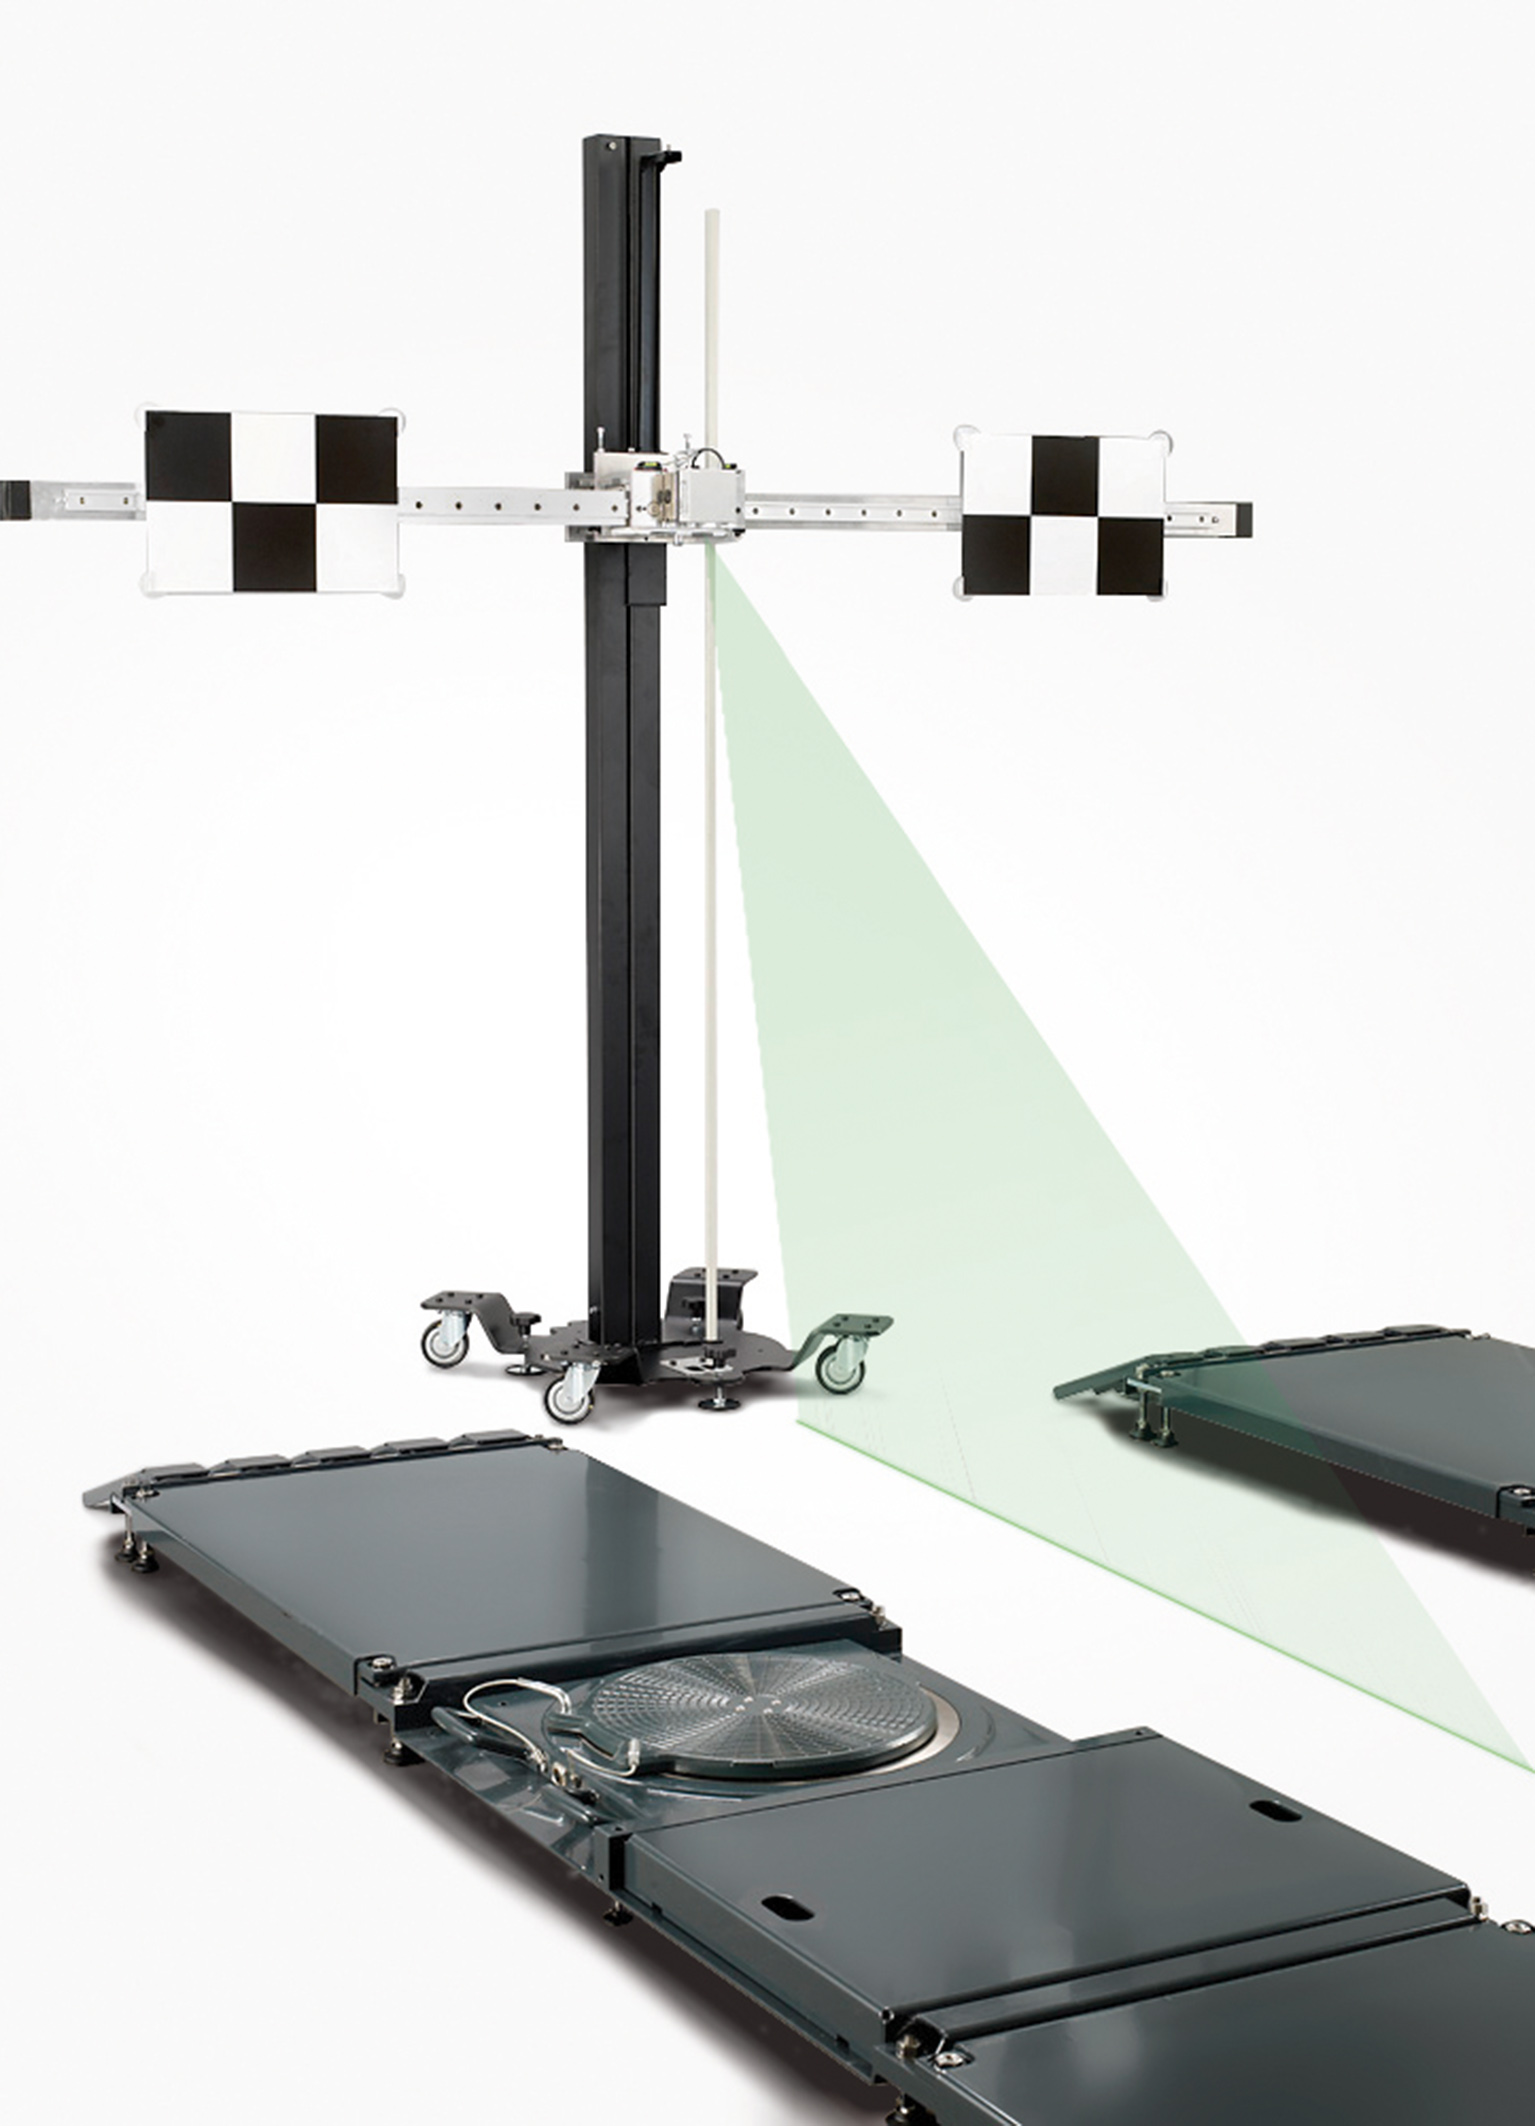 SCT 415: Universal mounting for the high precision measuring bar and vehicle specific targets